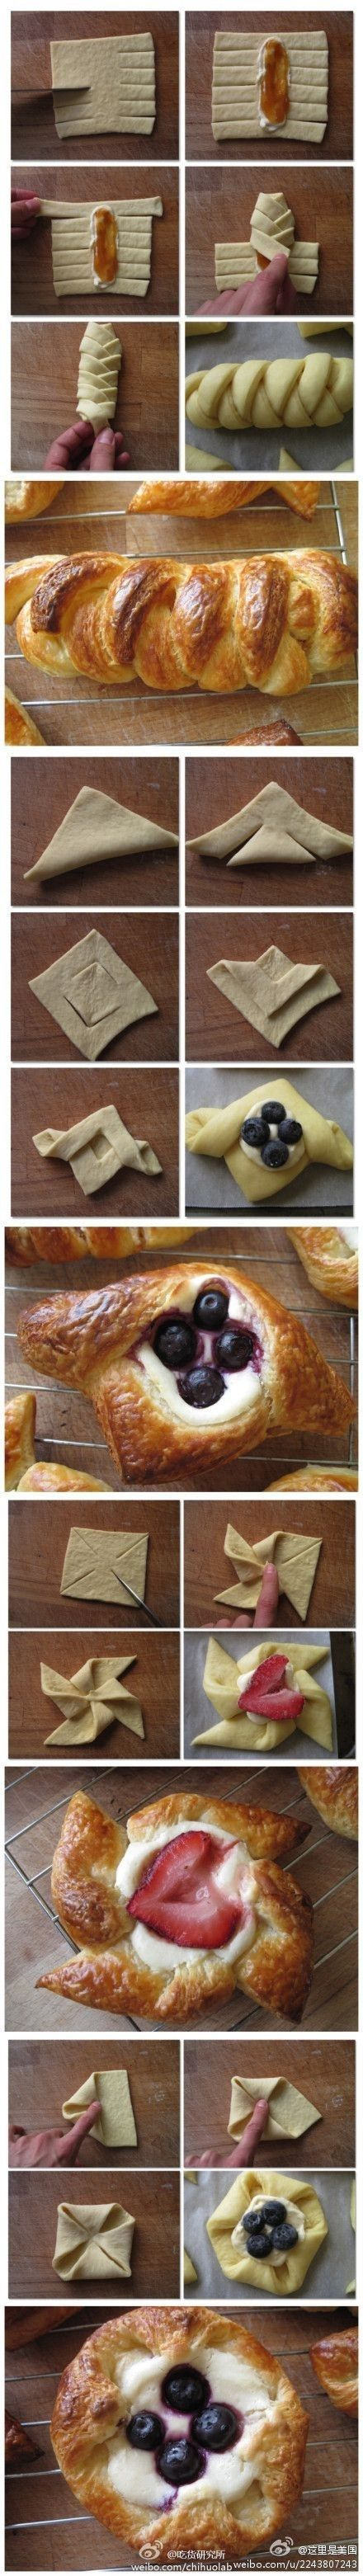 mastering the art of a danish pastry